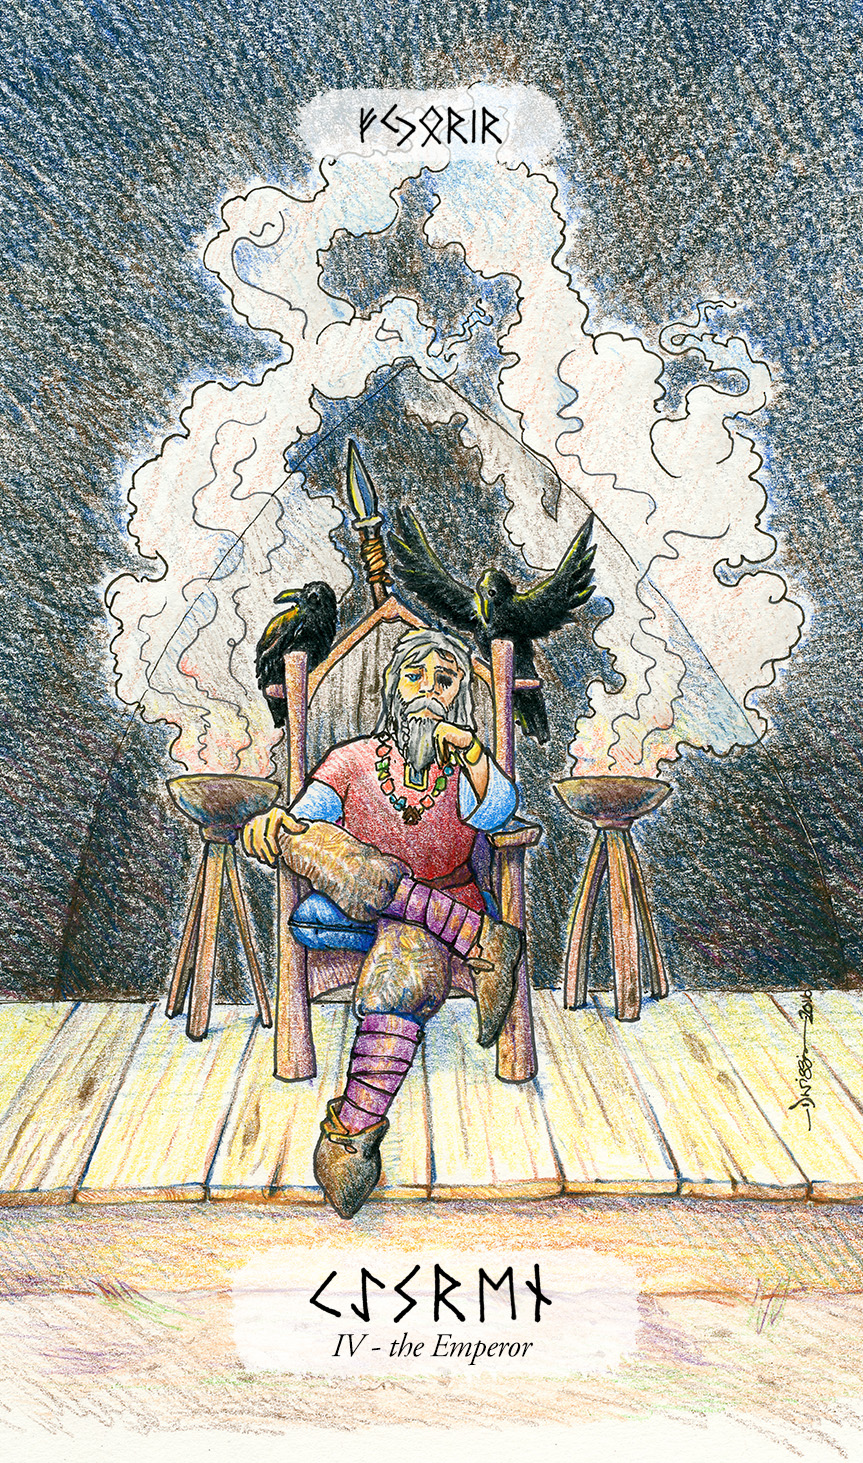 Odin as the Emperor